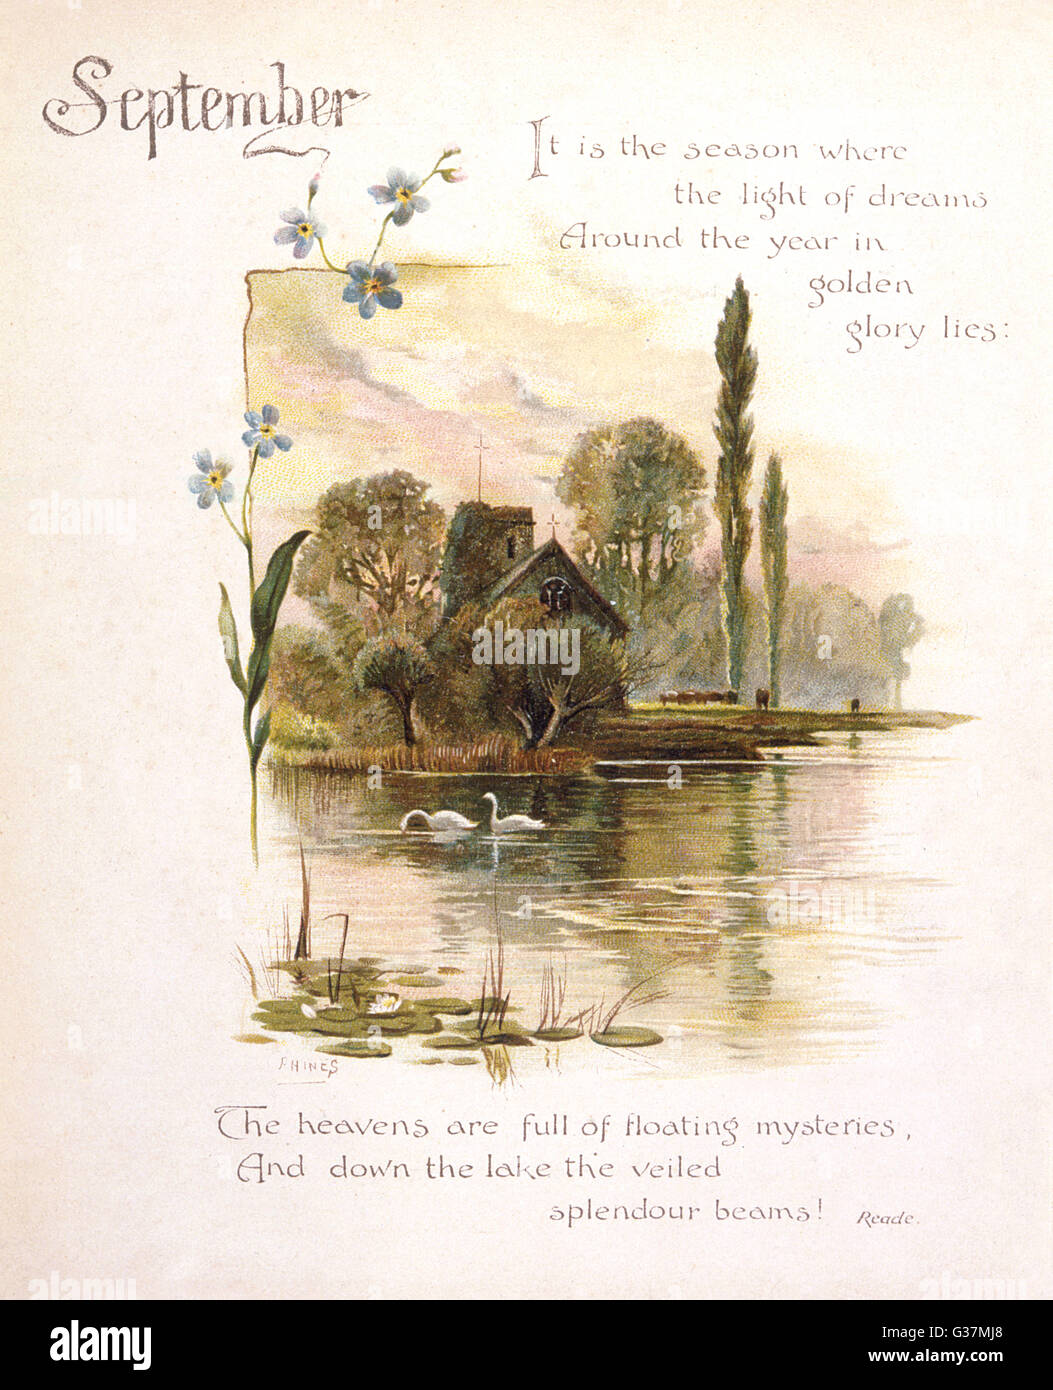 Book illustration -- September, with swans on a river.      Date: circa 1880 - Stock Image